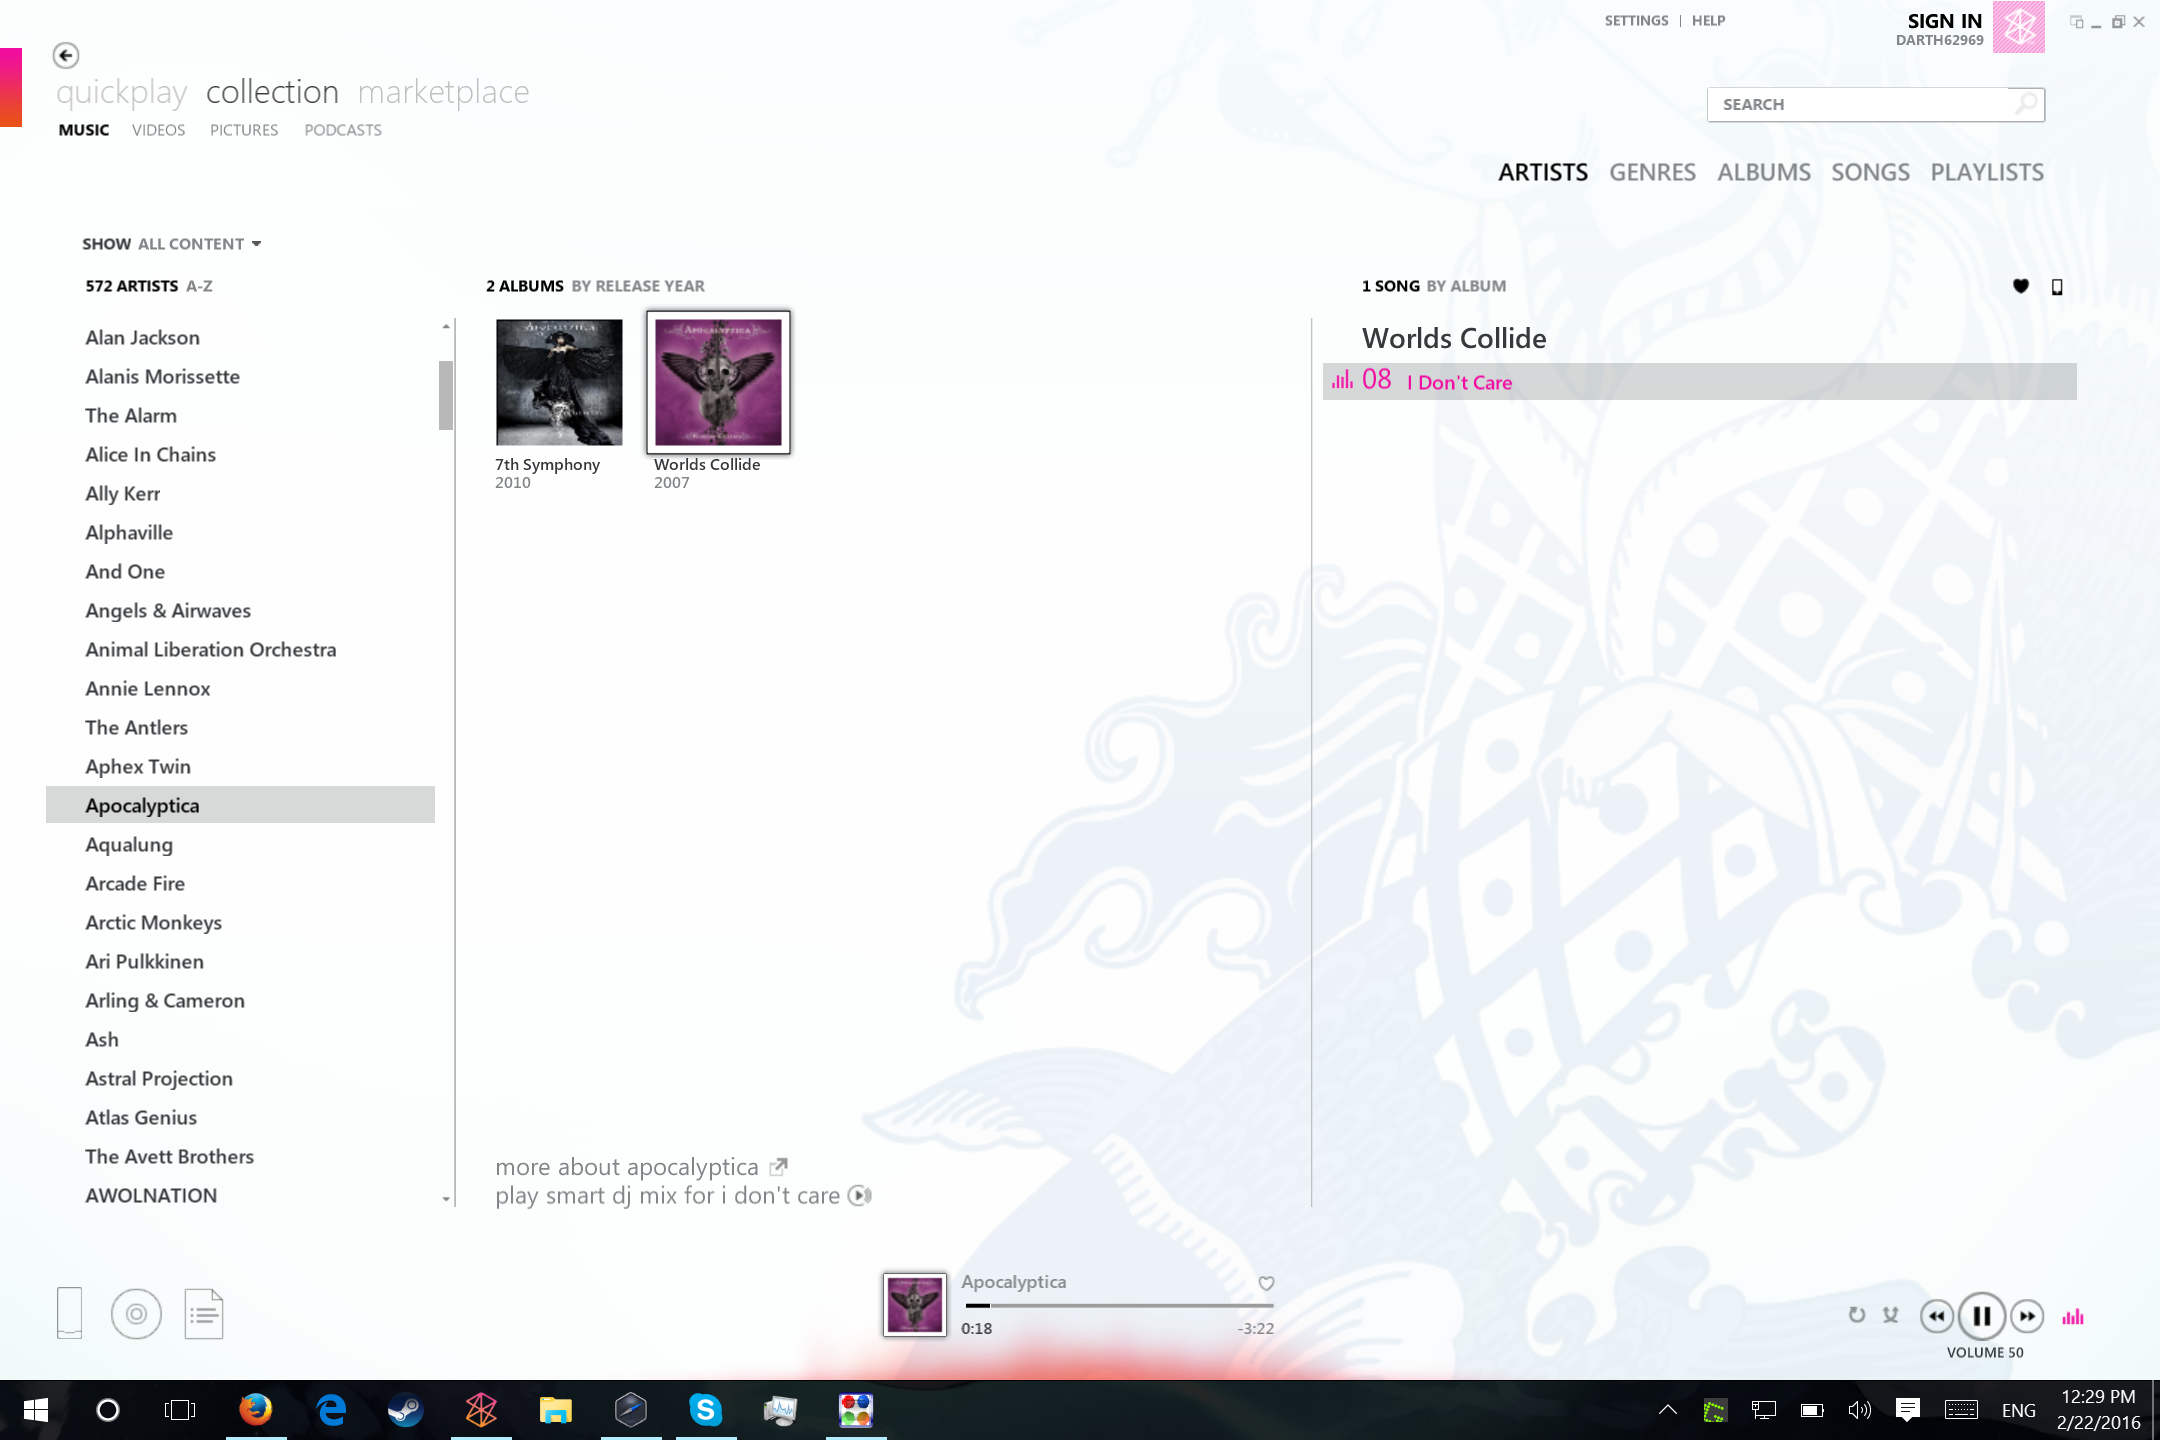 HOW TO REINSTALL ZUNE DRIVER FOR WINDOWS 8